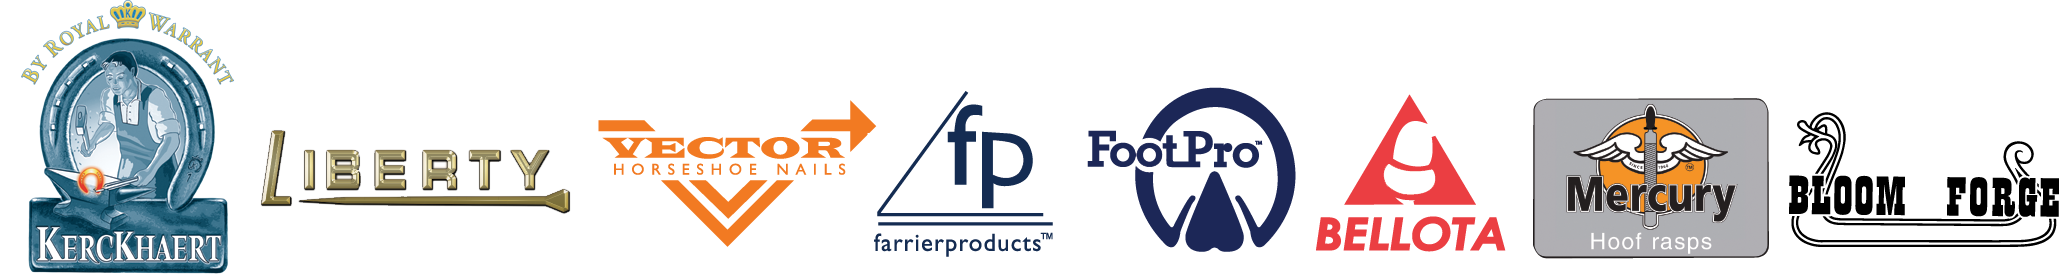 farrierproductsgroup